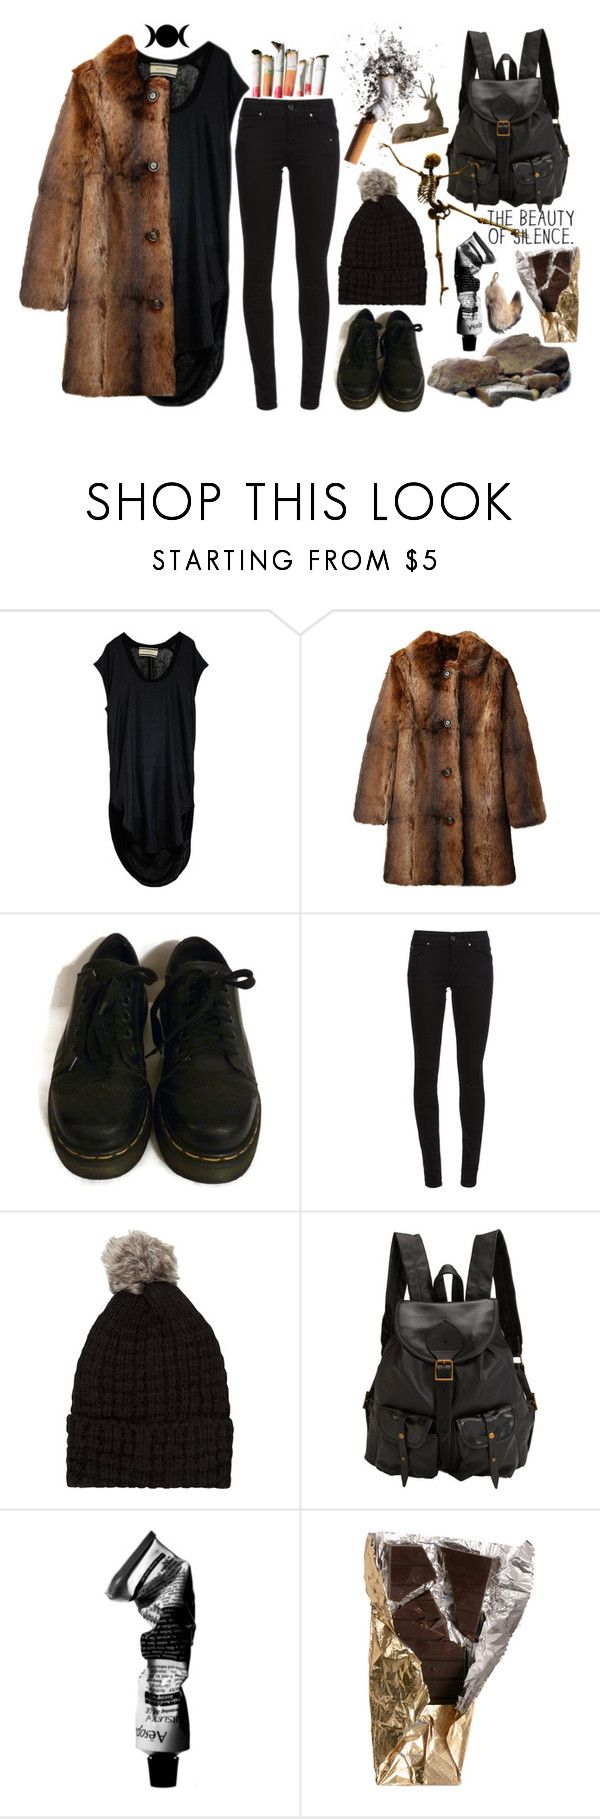 """""""in the beginning"""" by beatnikgonzo ❤ liked on Polyvore featuring By Malene Birger, A.P.C., Dr. Martens, Burberry, Jas M.B., Aesop and Isabel Marant"""